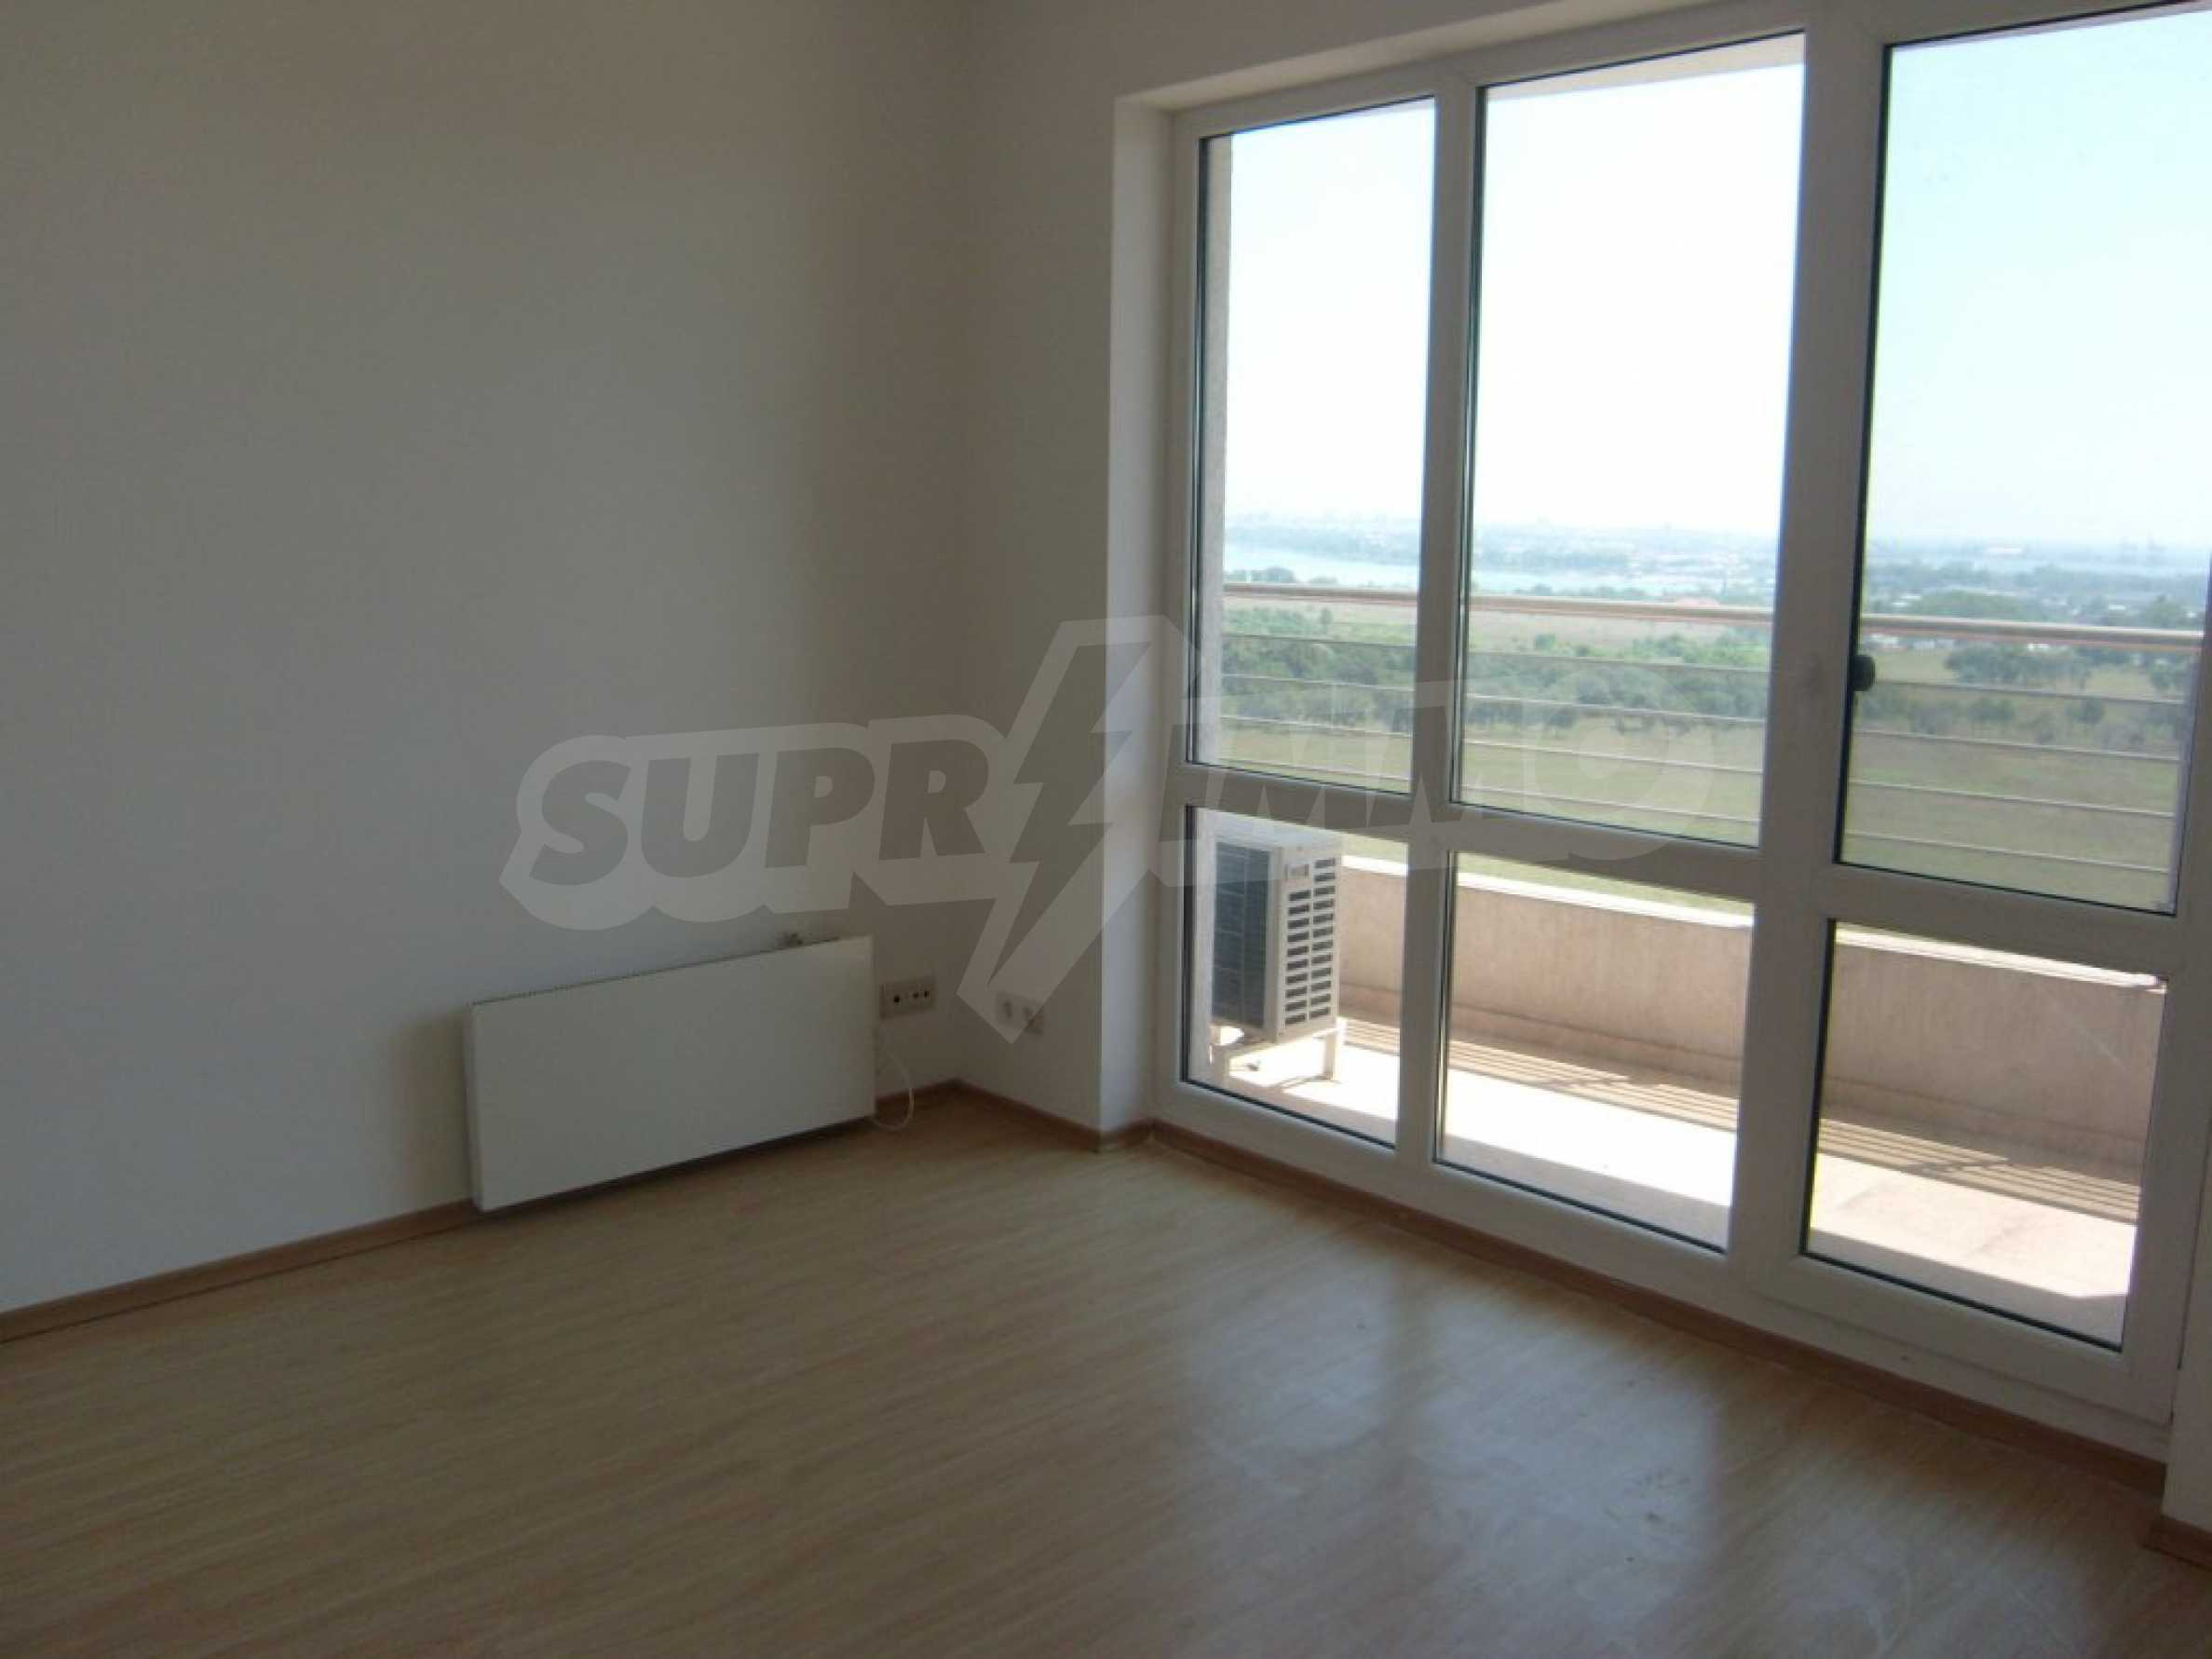 Sunny Hill - luxury residential complex in Burgas 14